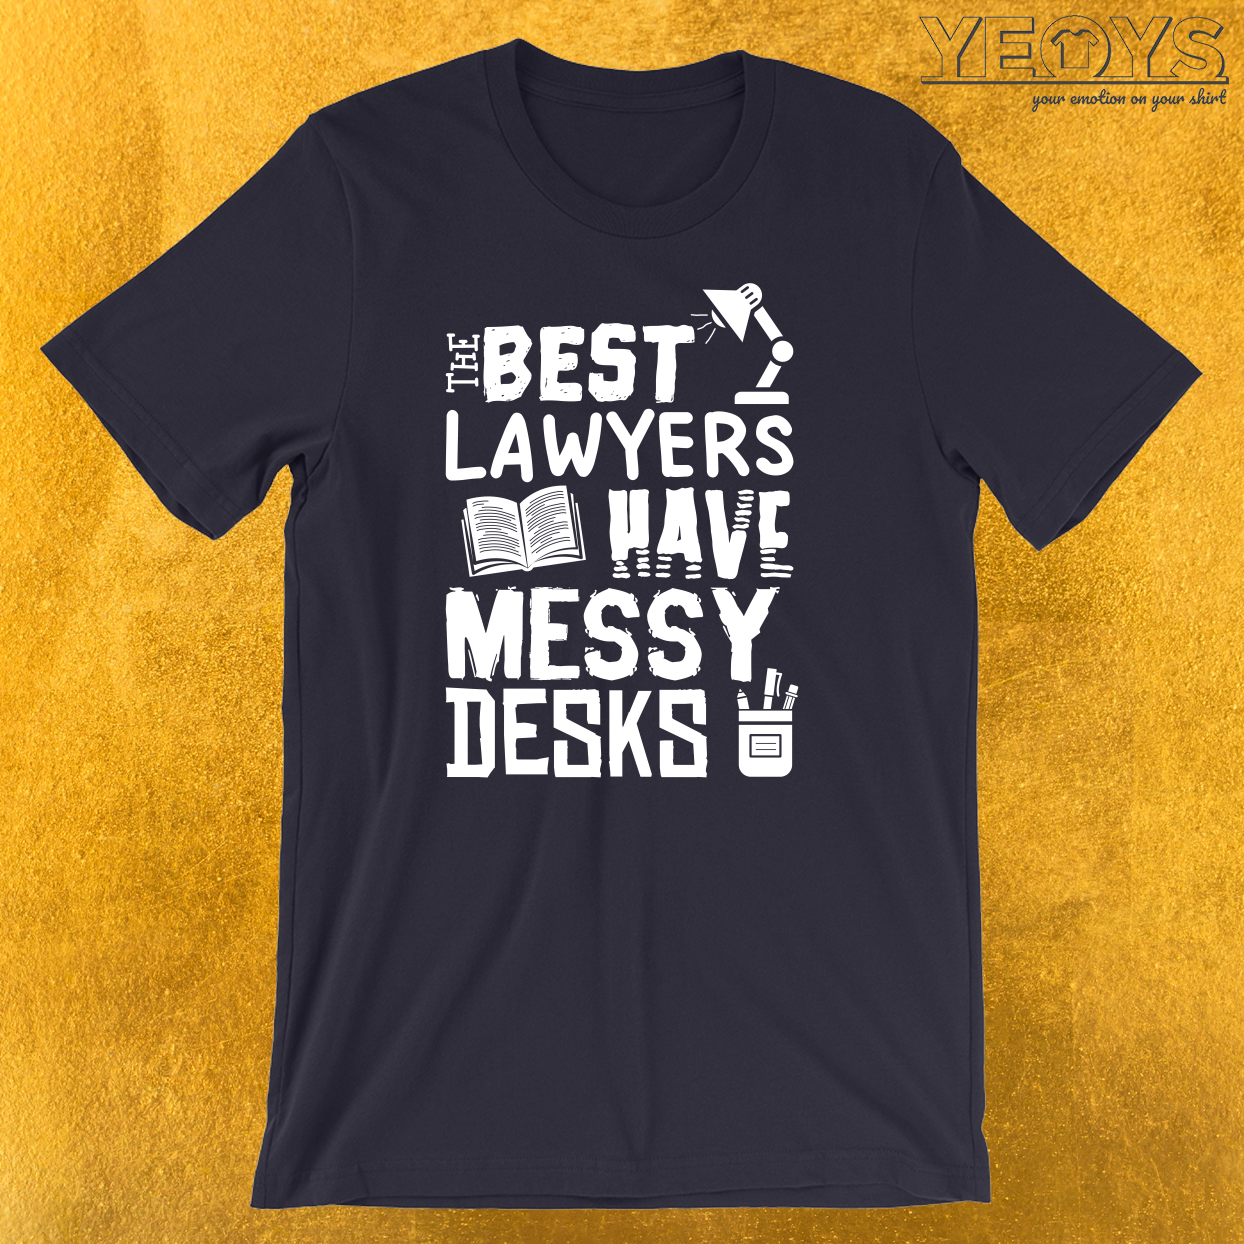 The Best Lawyers Have Messy Desks T-Shirt